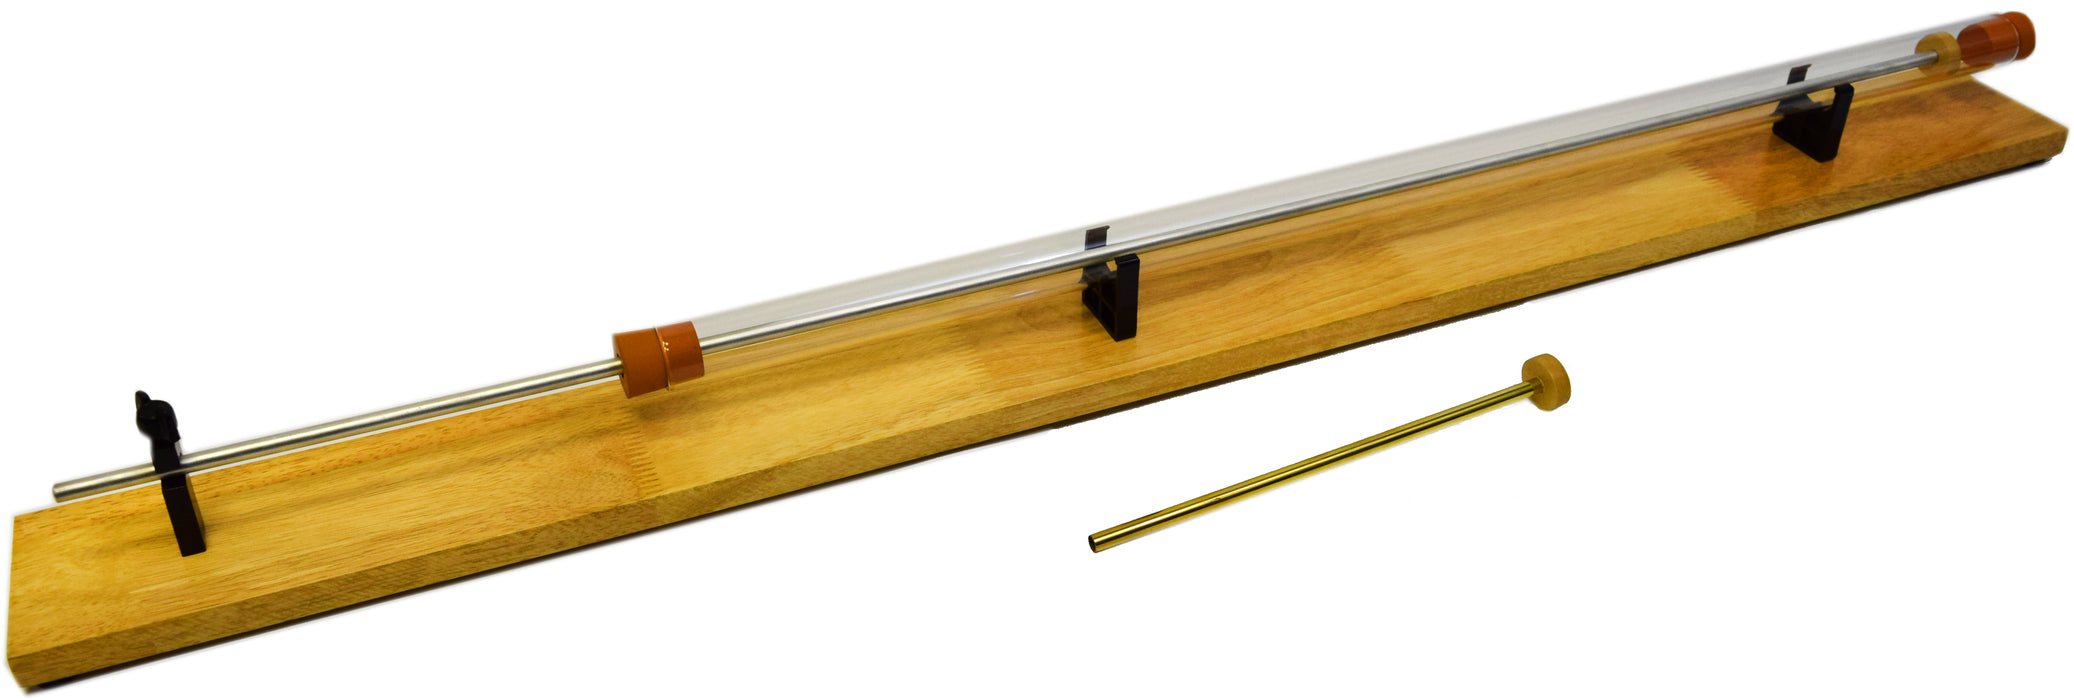 "Kundt's Tube, Unmounted, Glass, Cork Piston, Stable Wooden Base, 33"" Length - Eisco Labs"